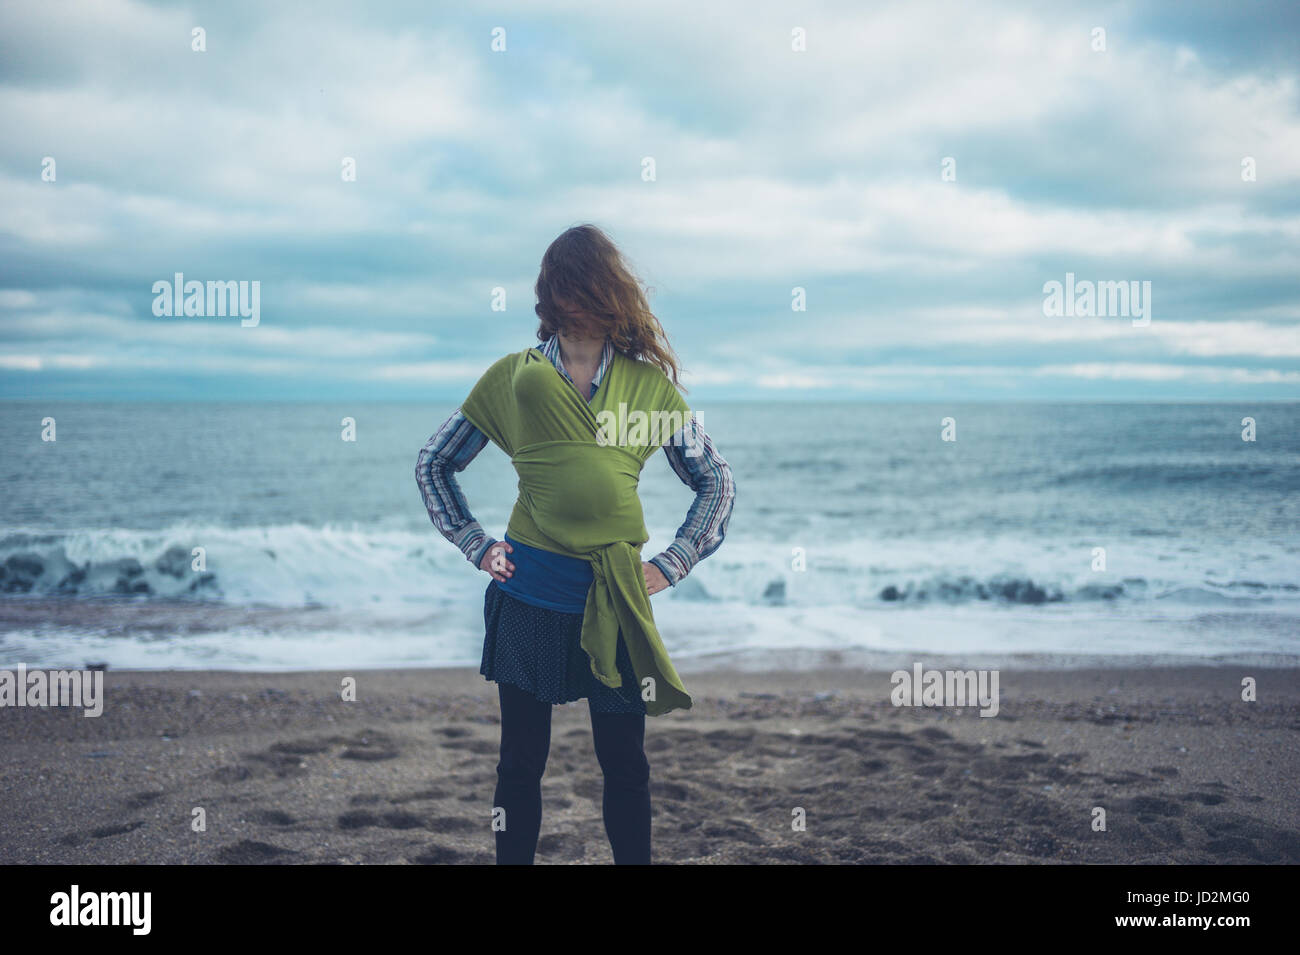 A young mother is standing on the beach with her baby wrapped in a sling - Stock Image